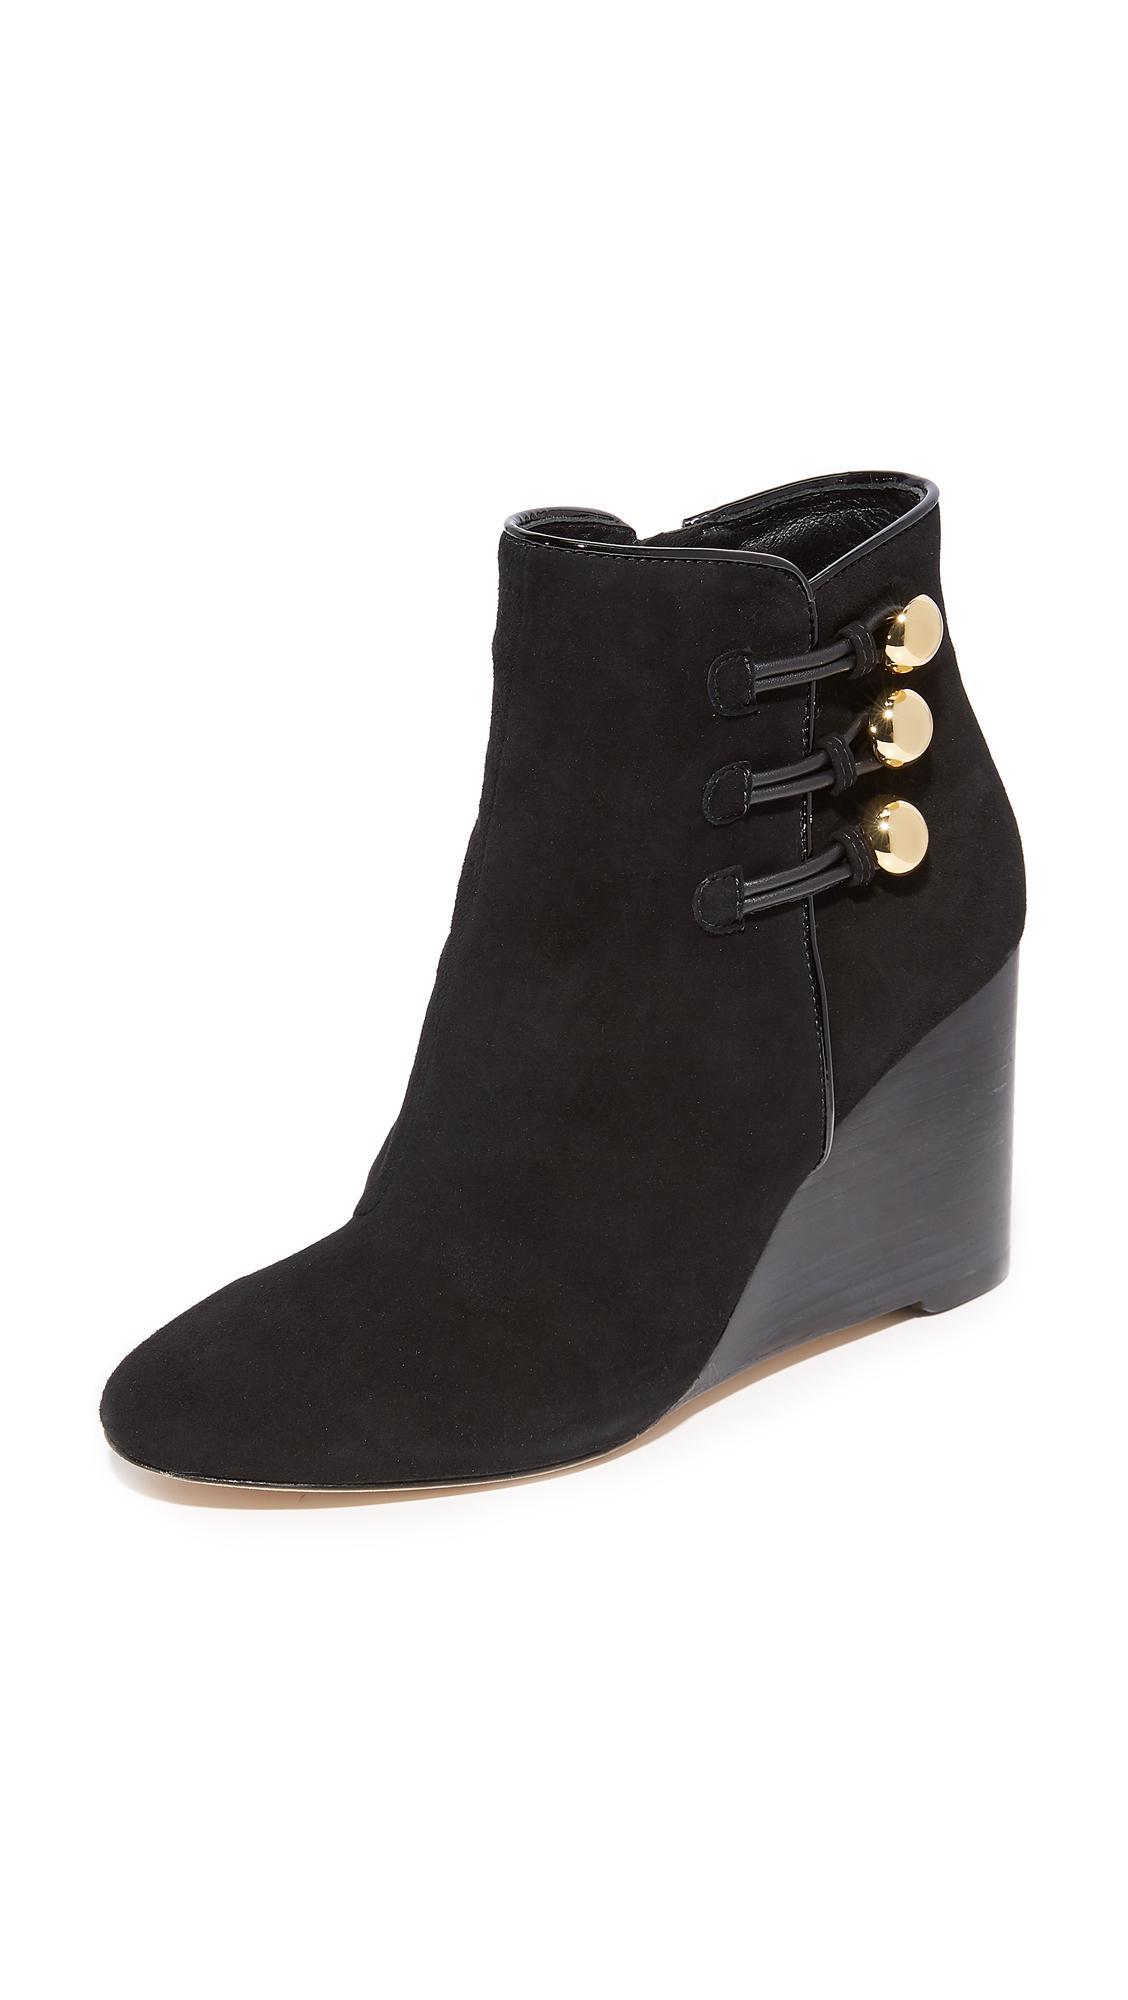 eec53c50da18 Kate Spade Geraldine Wedge Booties in Black - Lyst